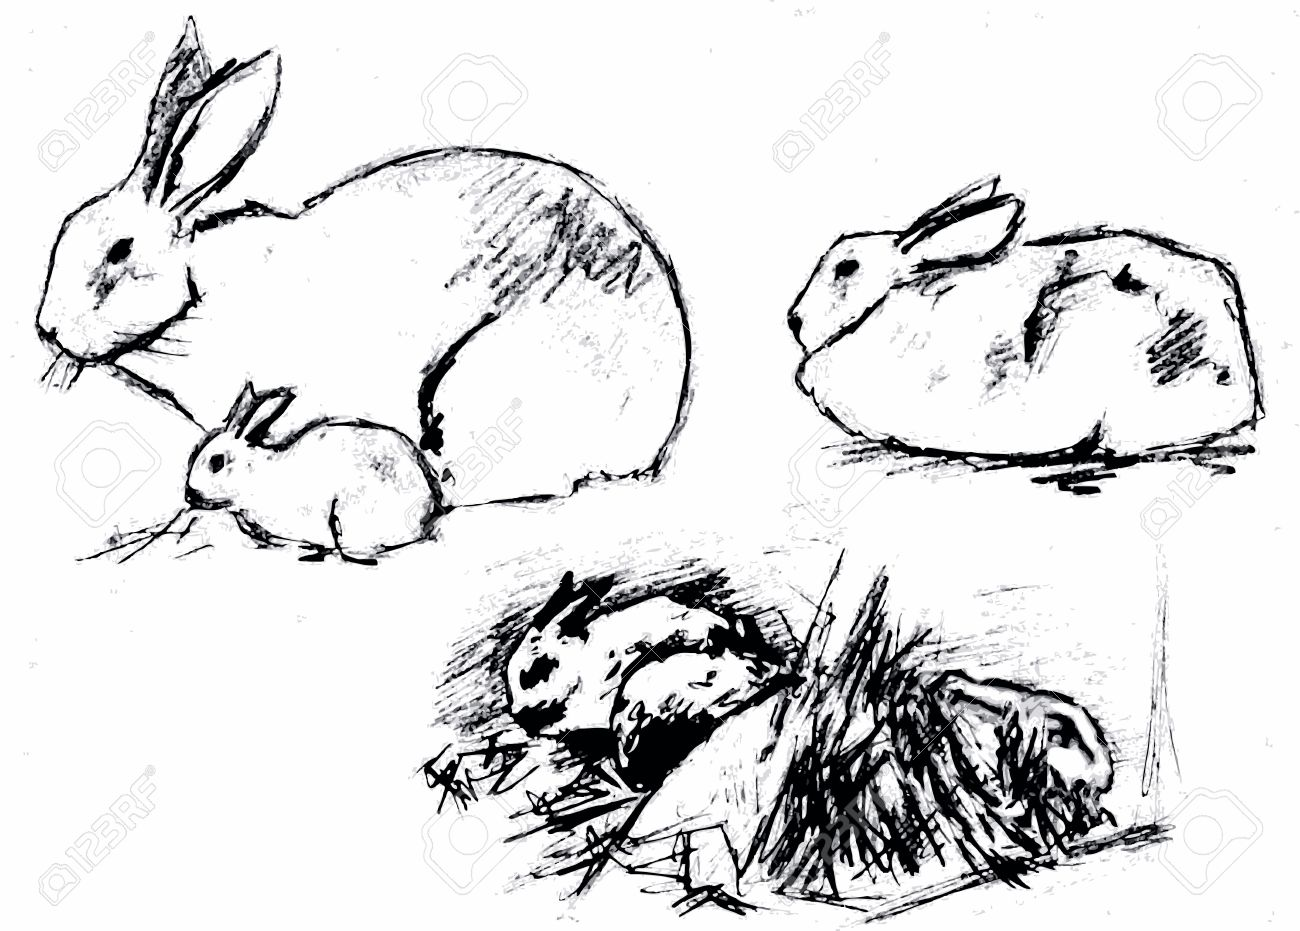 1300x931 Rabbitpet Hare Houseanimal Grass Vector Black Drawing Sketch